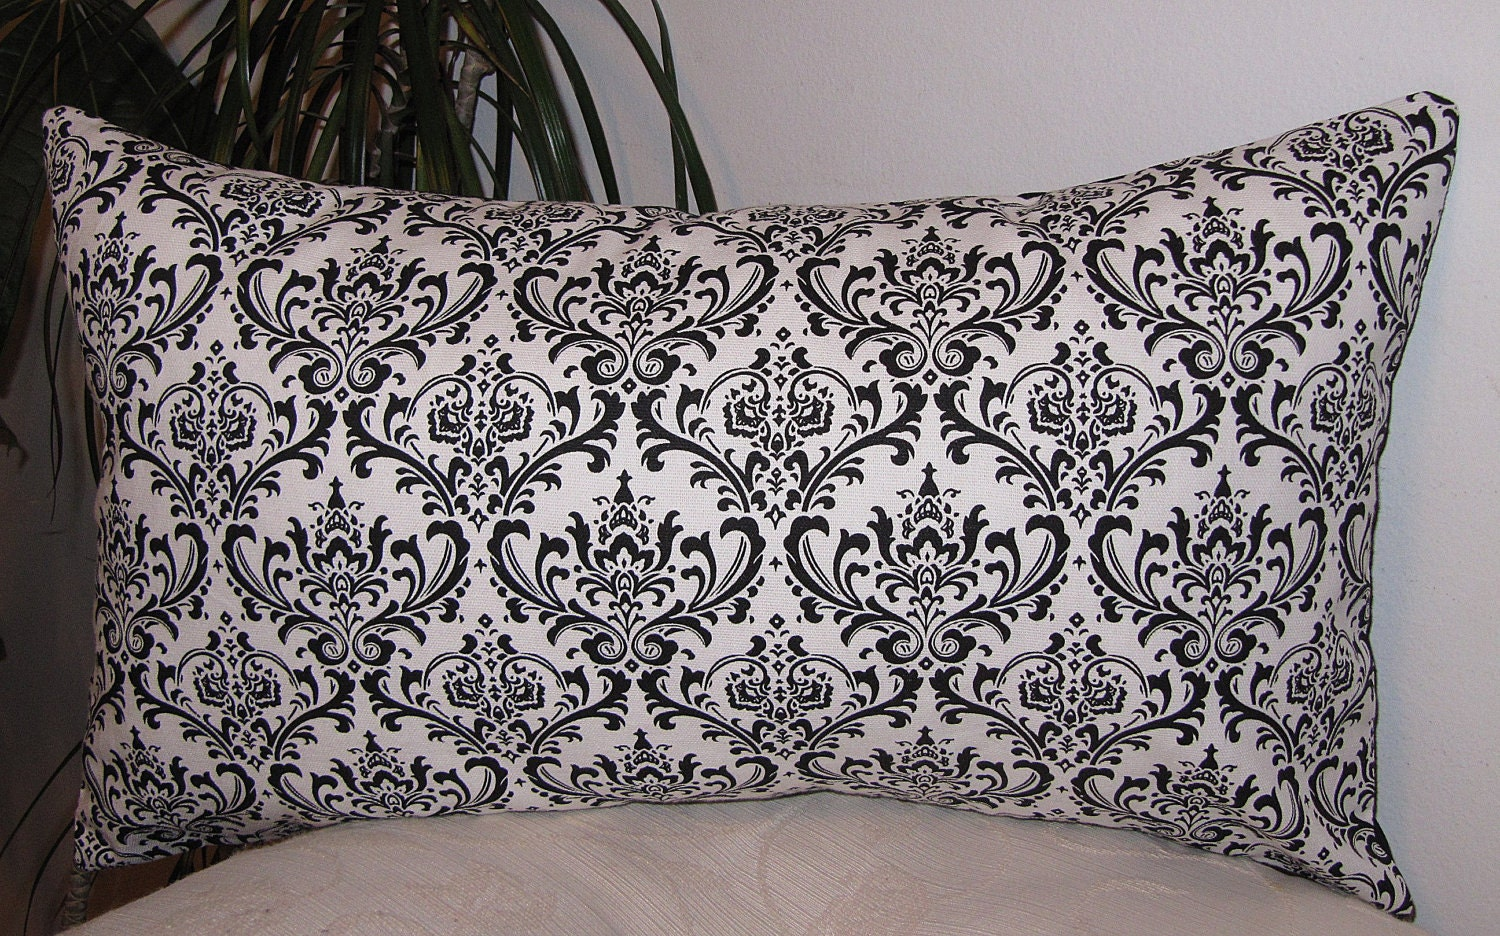 damask black and white decorative pillow cover lumbar. Black Bedroom Furniture Sets. Home Design Ideas